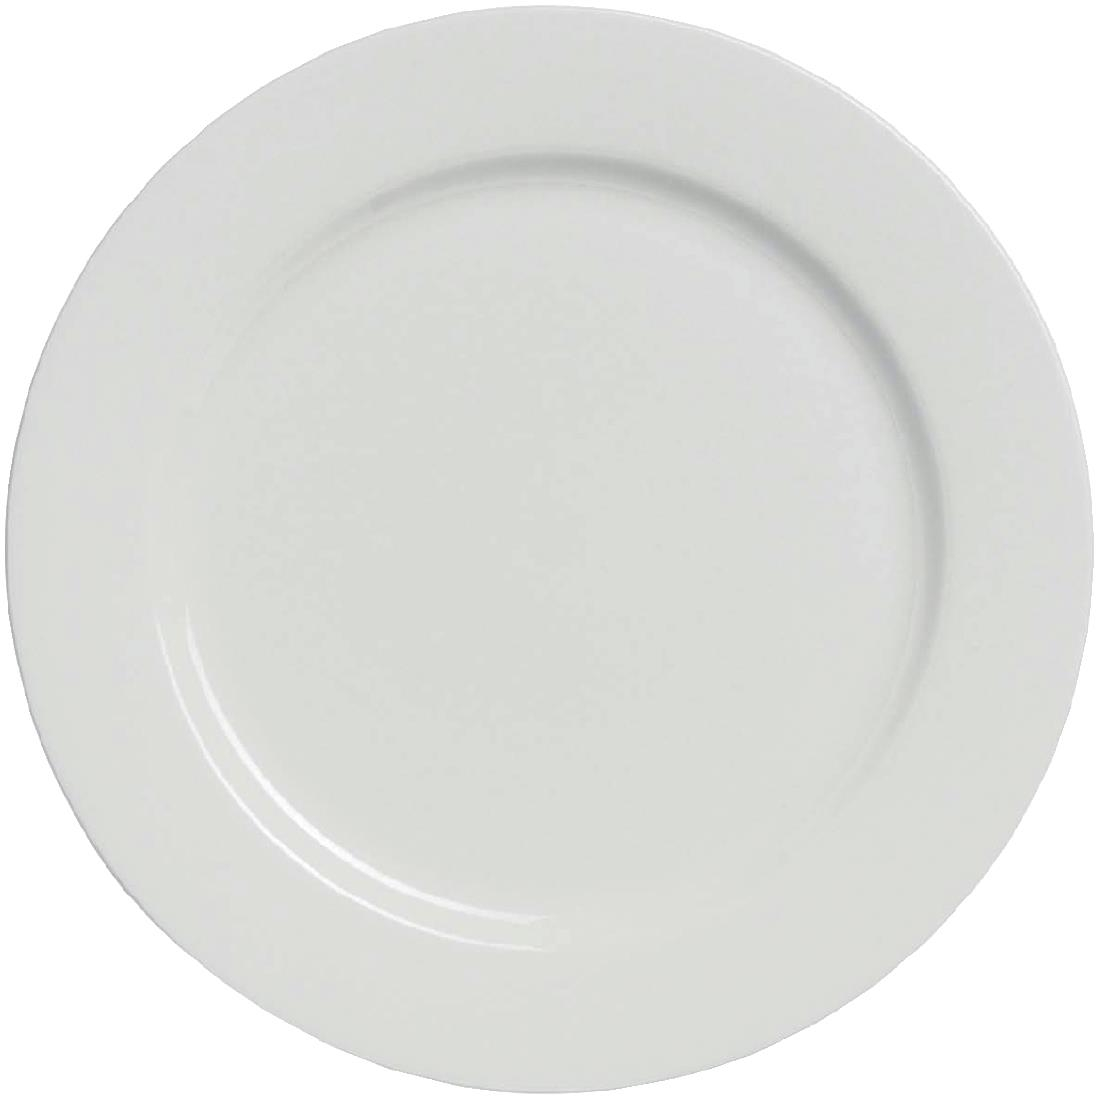 Image of Elia Glacier Fine China Plates 210mm (Pack of 4) Pack of 4